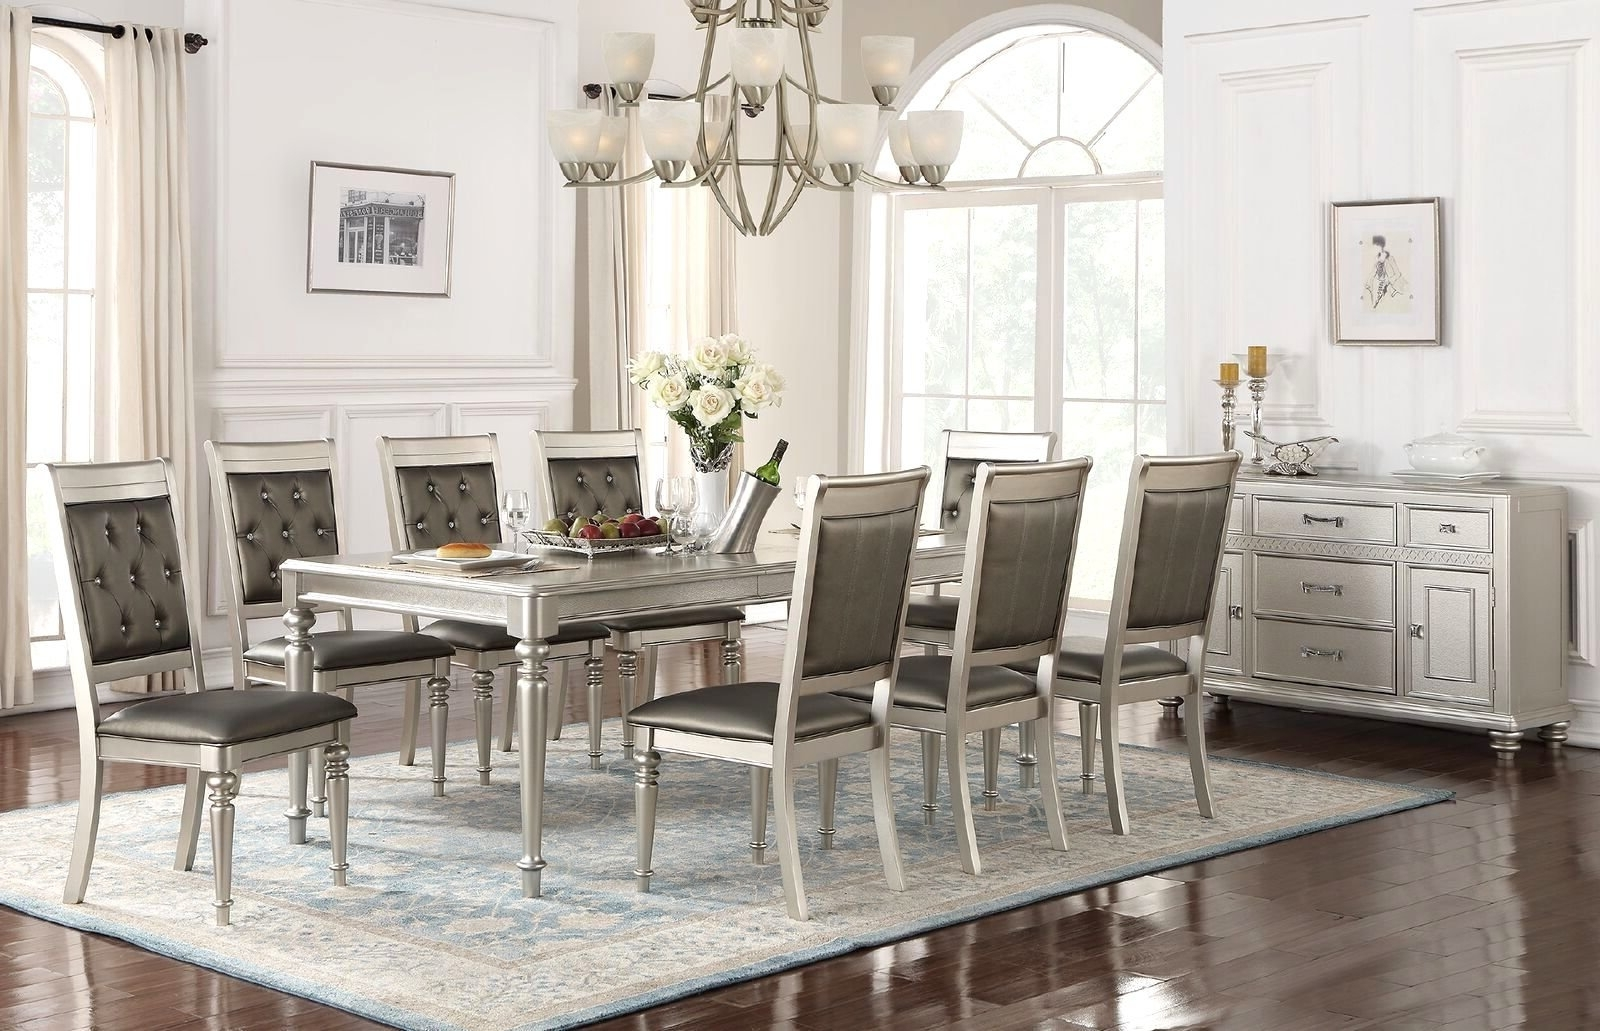 Wayfair Intended For Caira Black 5 Piece Round Dining Sets With Diamond Back Side Chairs (View 23 of 25)